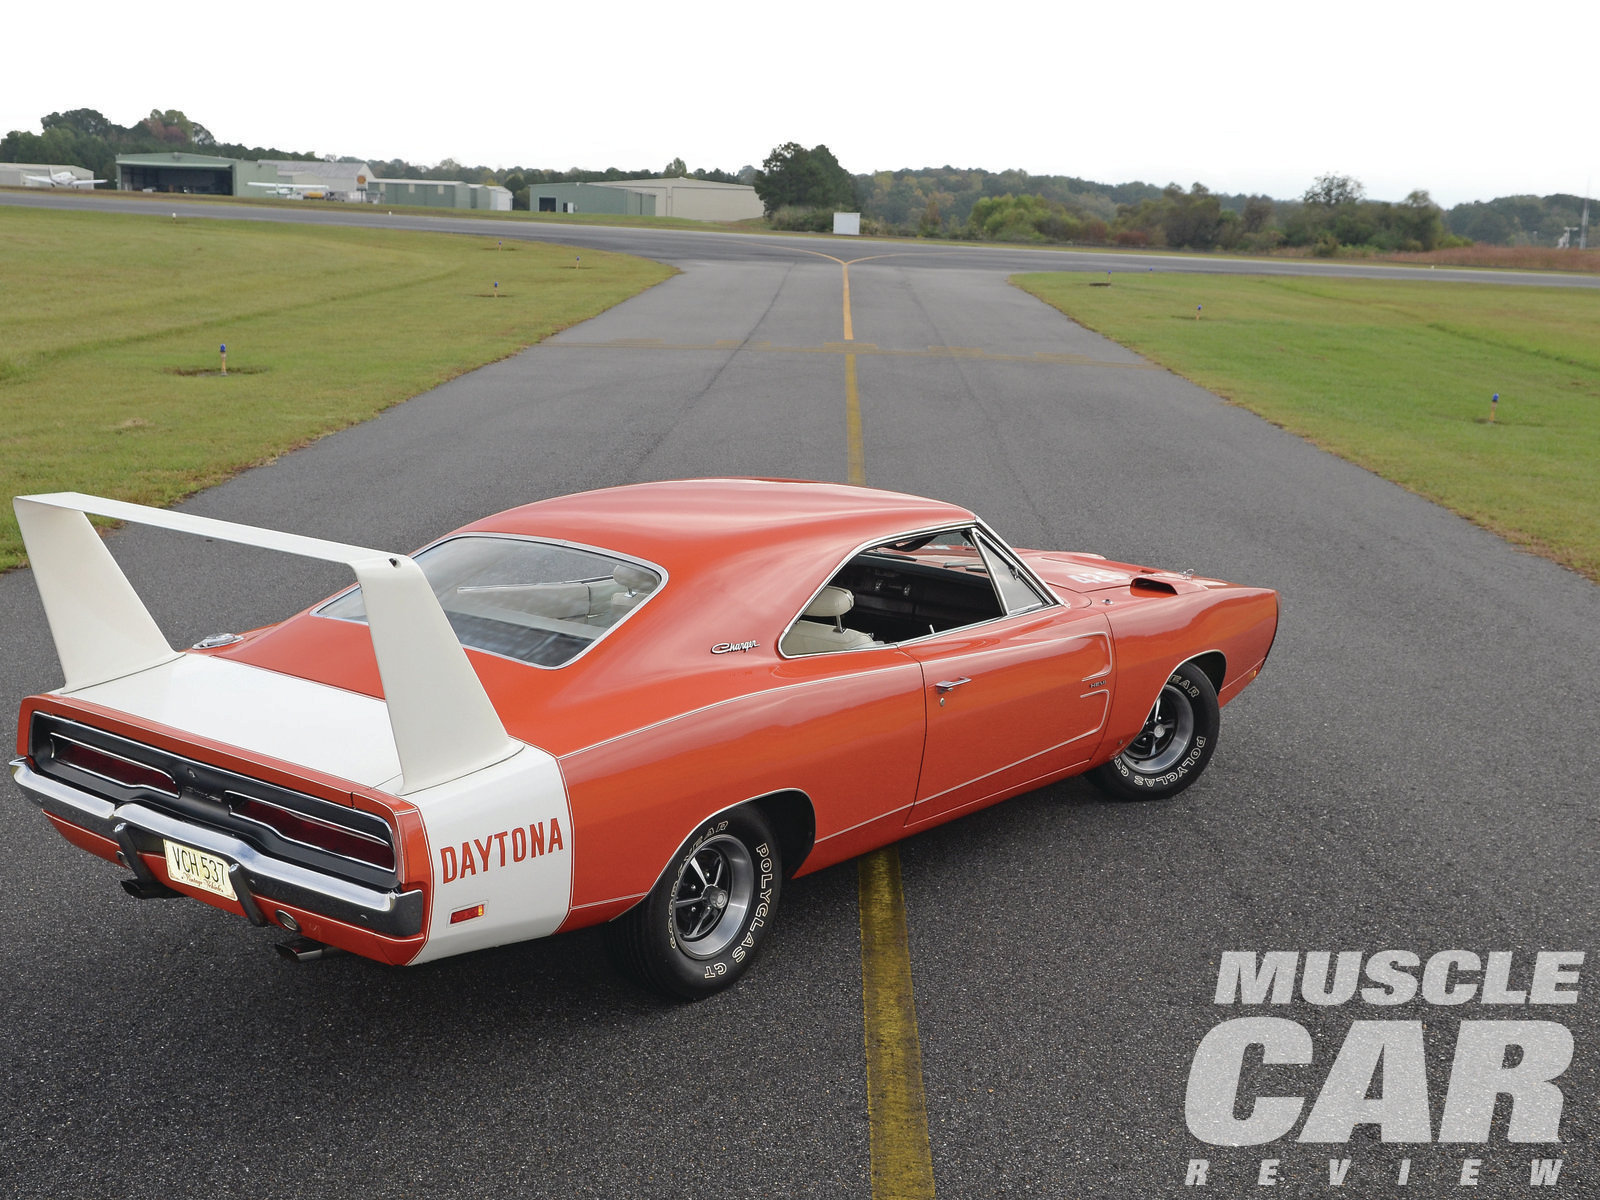 The combination of Hemi Orange paint with a white wing and white interior makes this car pretty impressive.